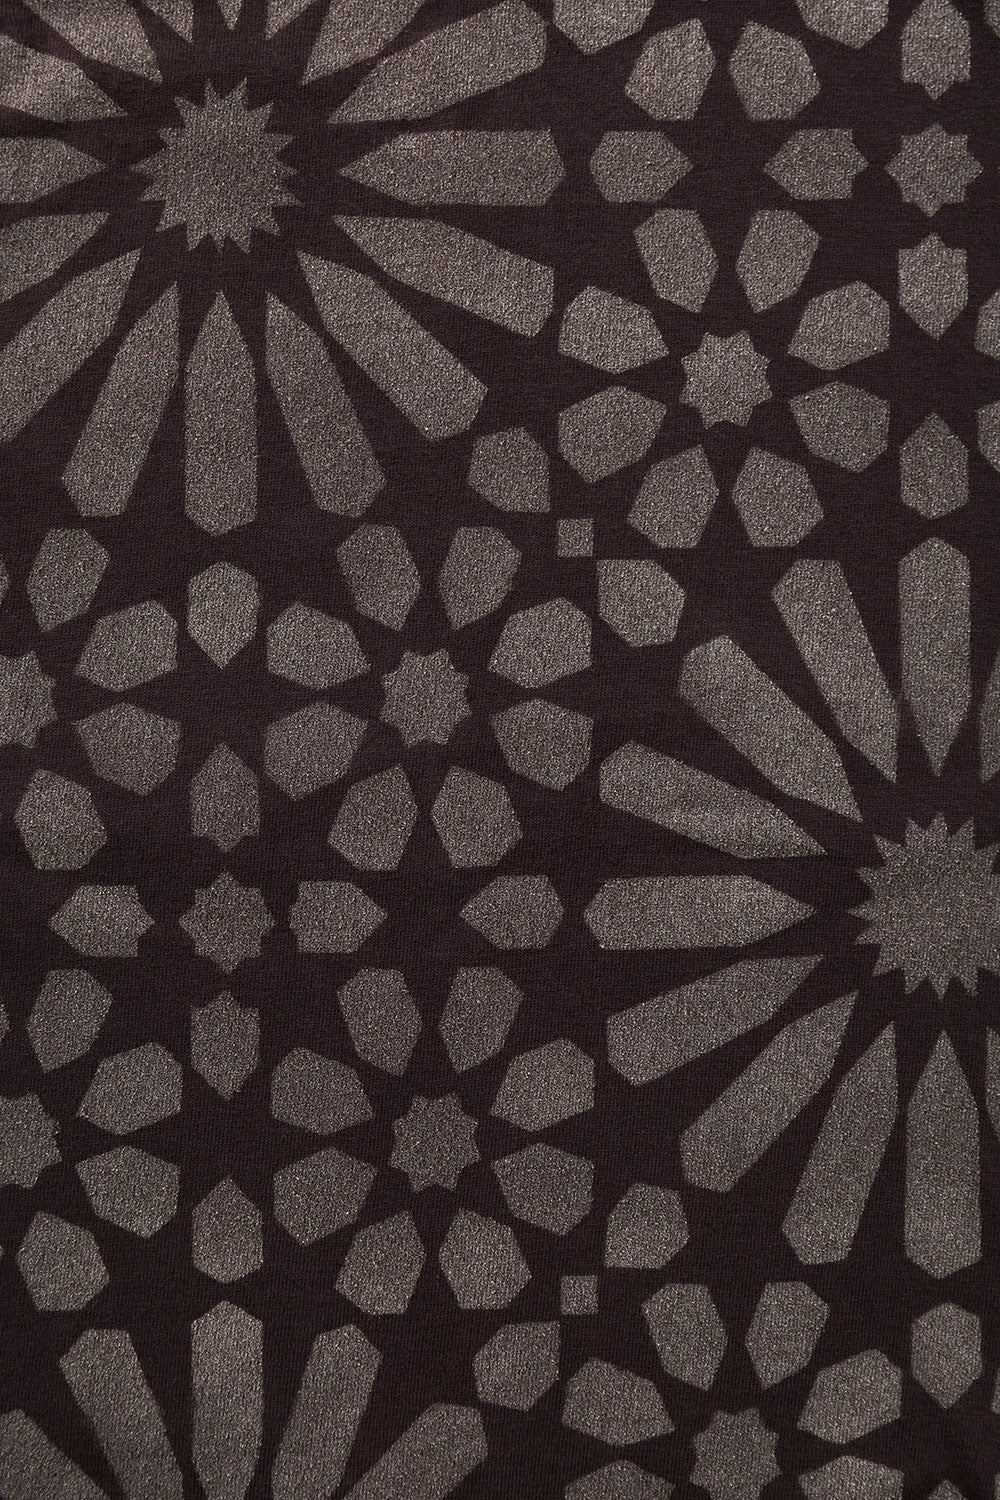 The School of Making Facets Stencil Abstract Floral Stencil Design for Hand-Painted DIY Clothing Projects in Brown